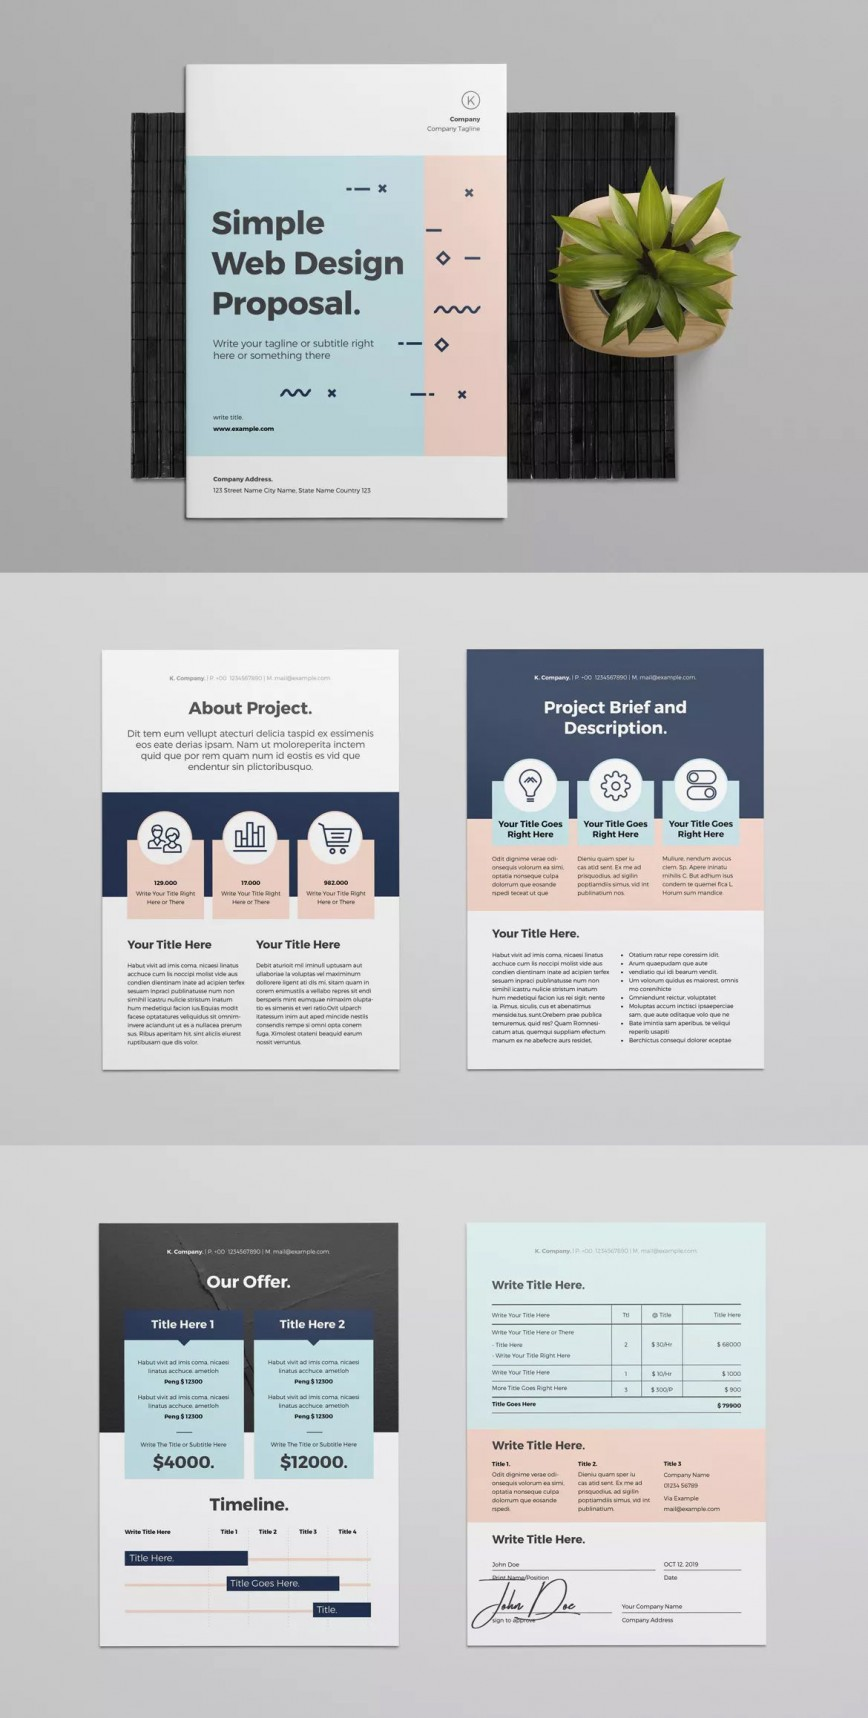 002 Rare Web Design Proposal Template High Definition  Free Word Simple